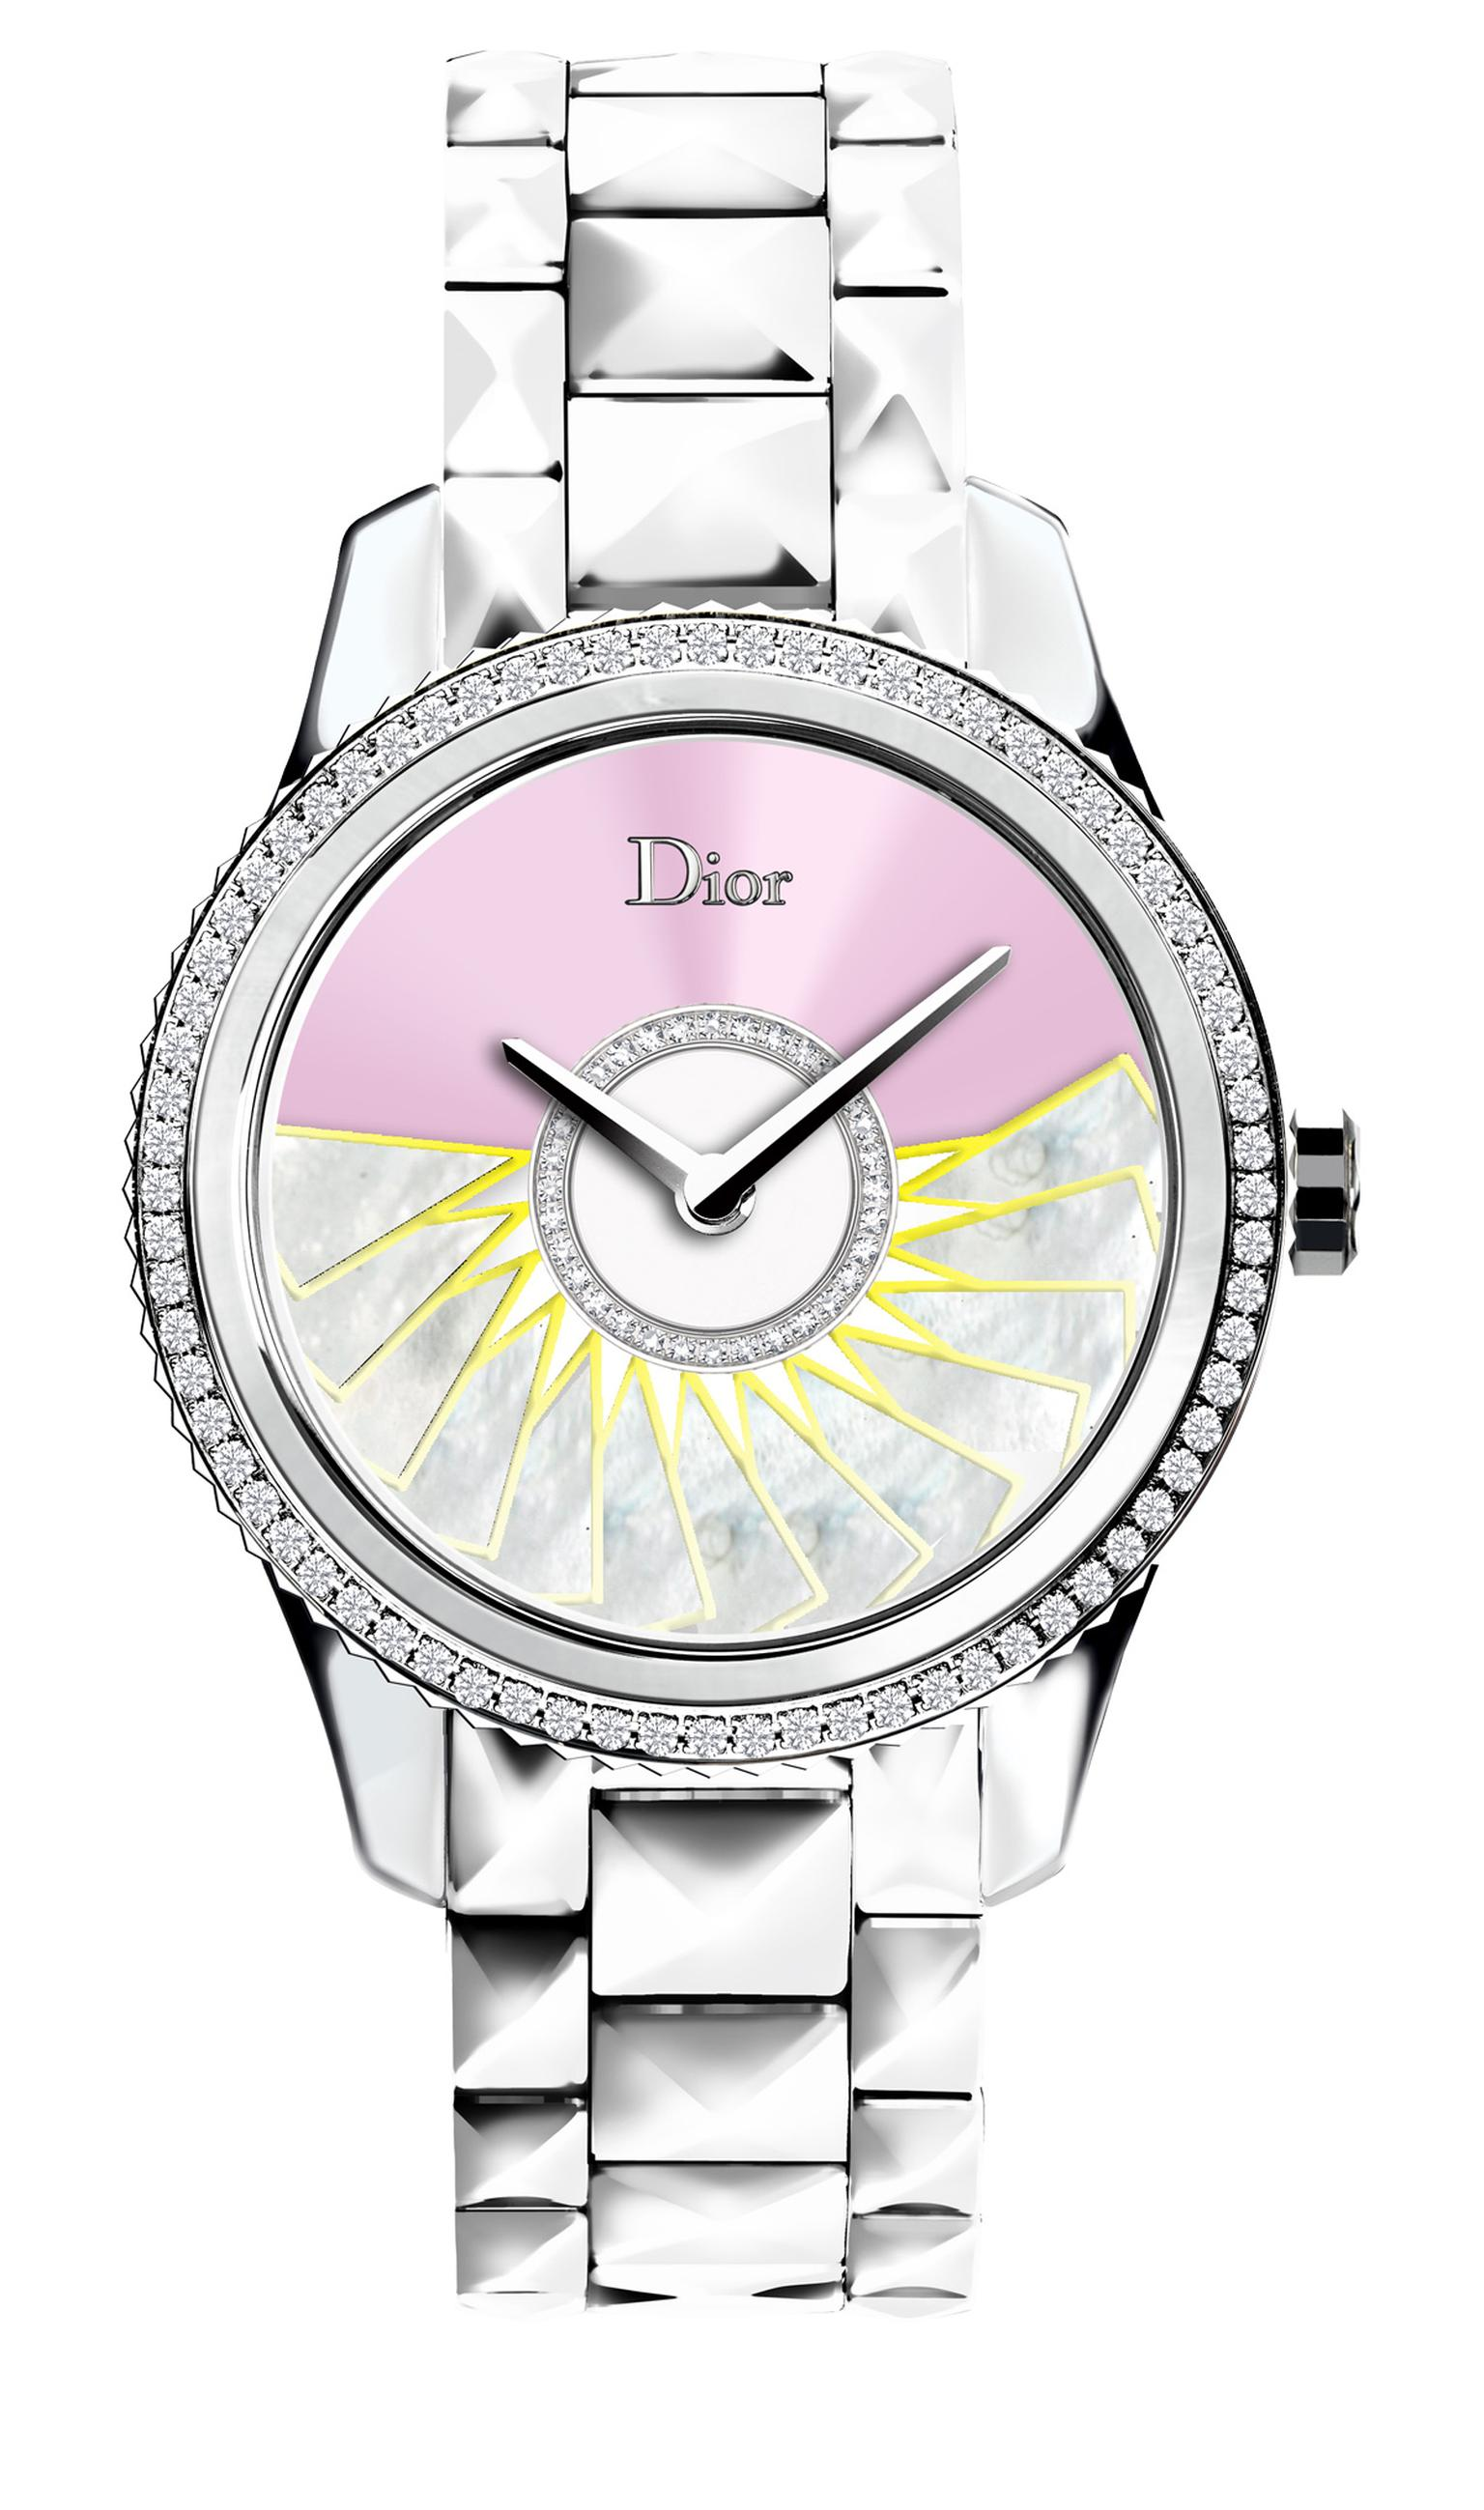 Dior VIII Grand Bal Plissé Soleil watch_20140305_Zoom